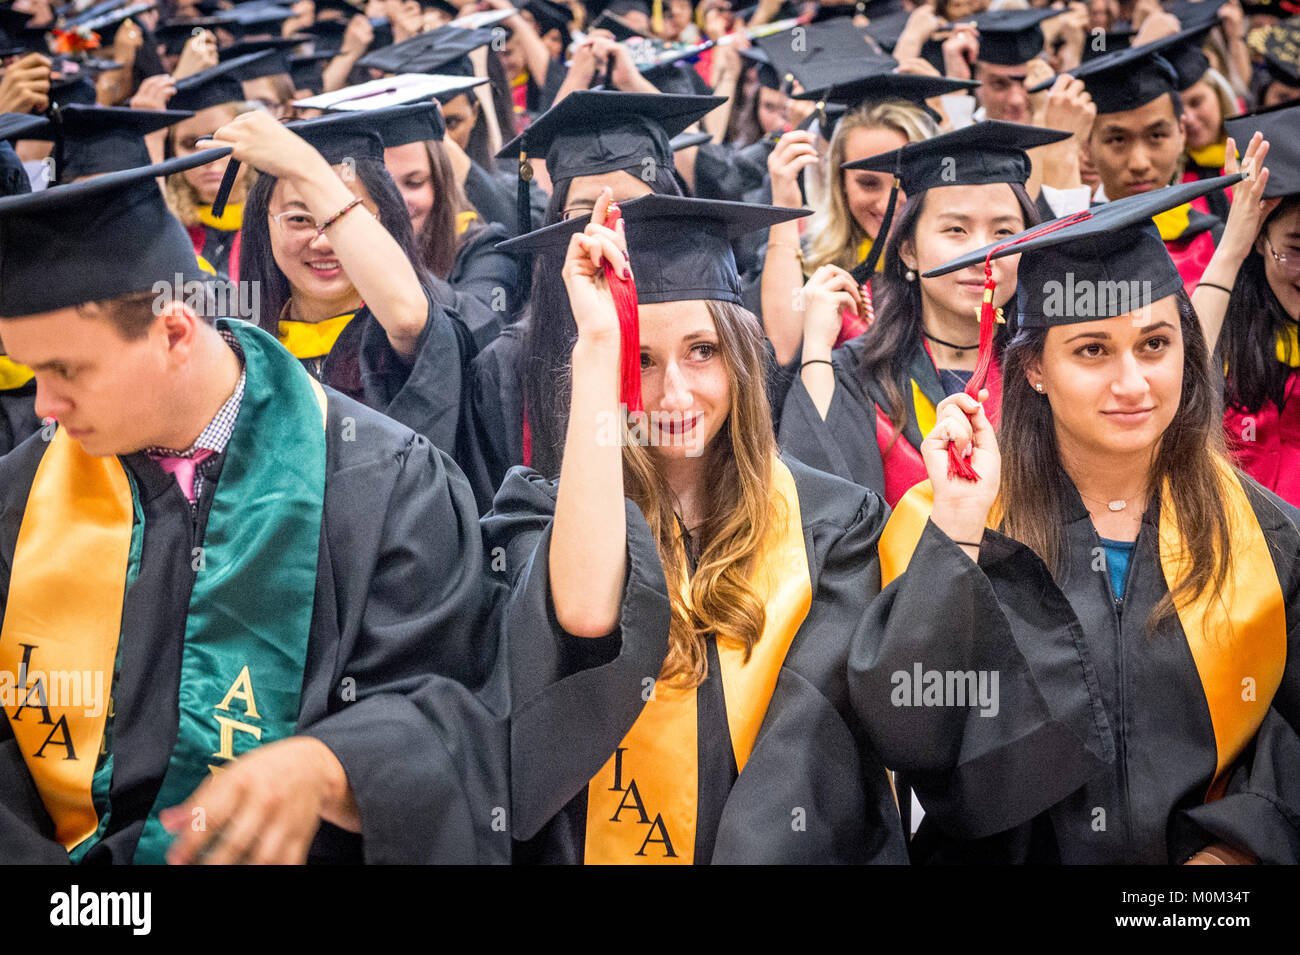 Group of young college graduates move their tassels on their graduation caps together, College Park, Maryland - Stock Image